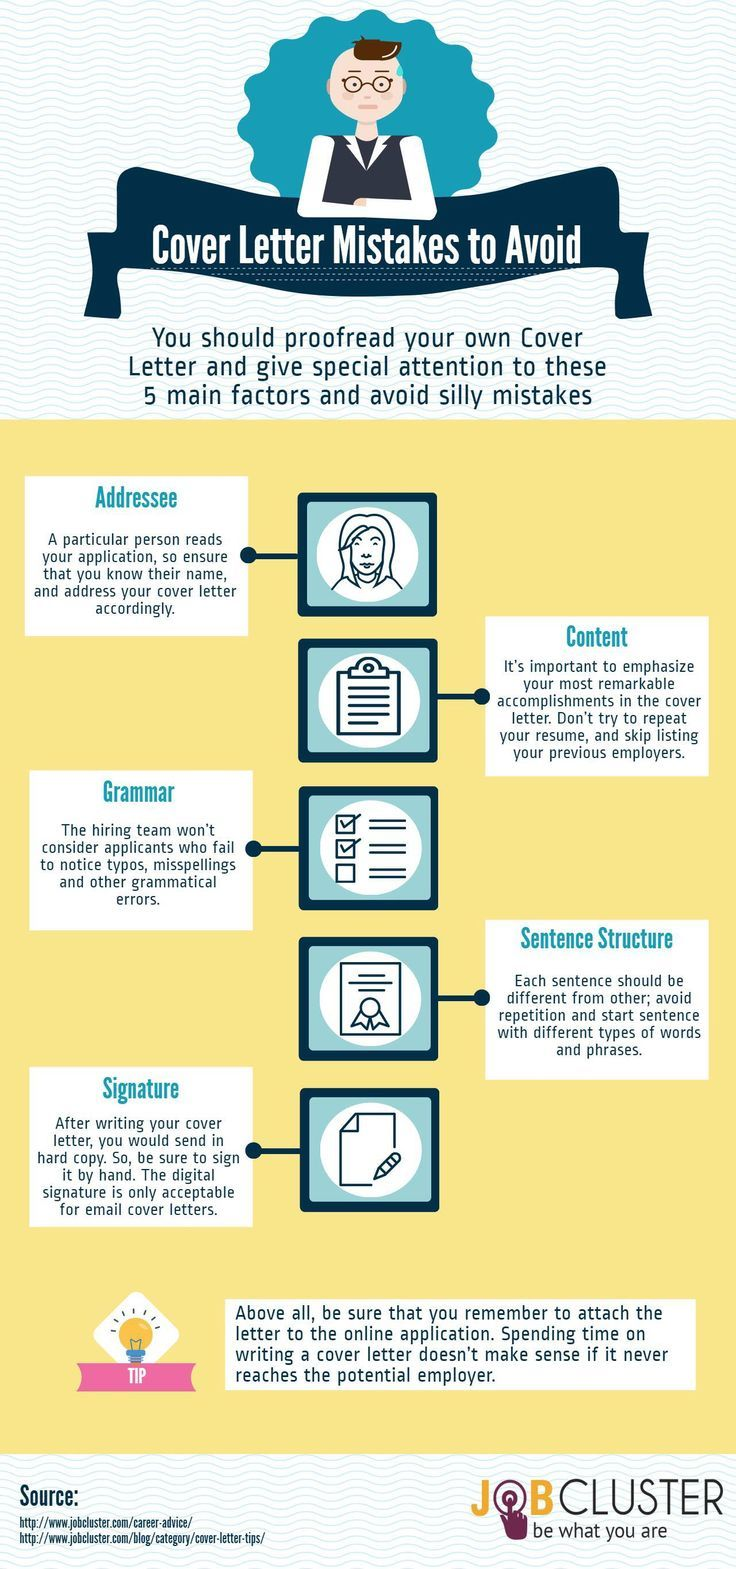 Cover Letter Mistakes to Avoid- Infpgraphic